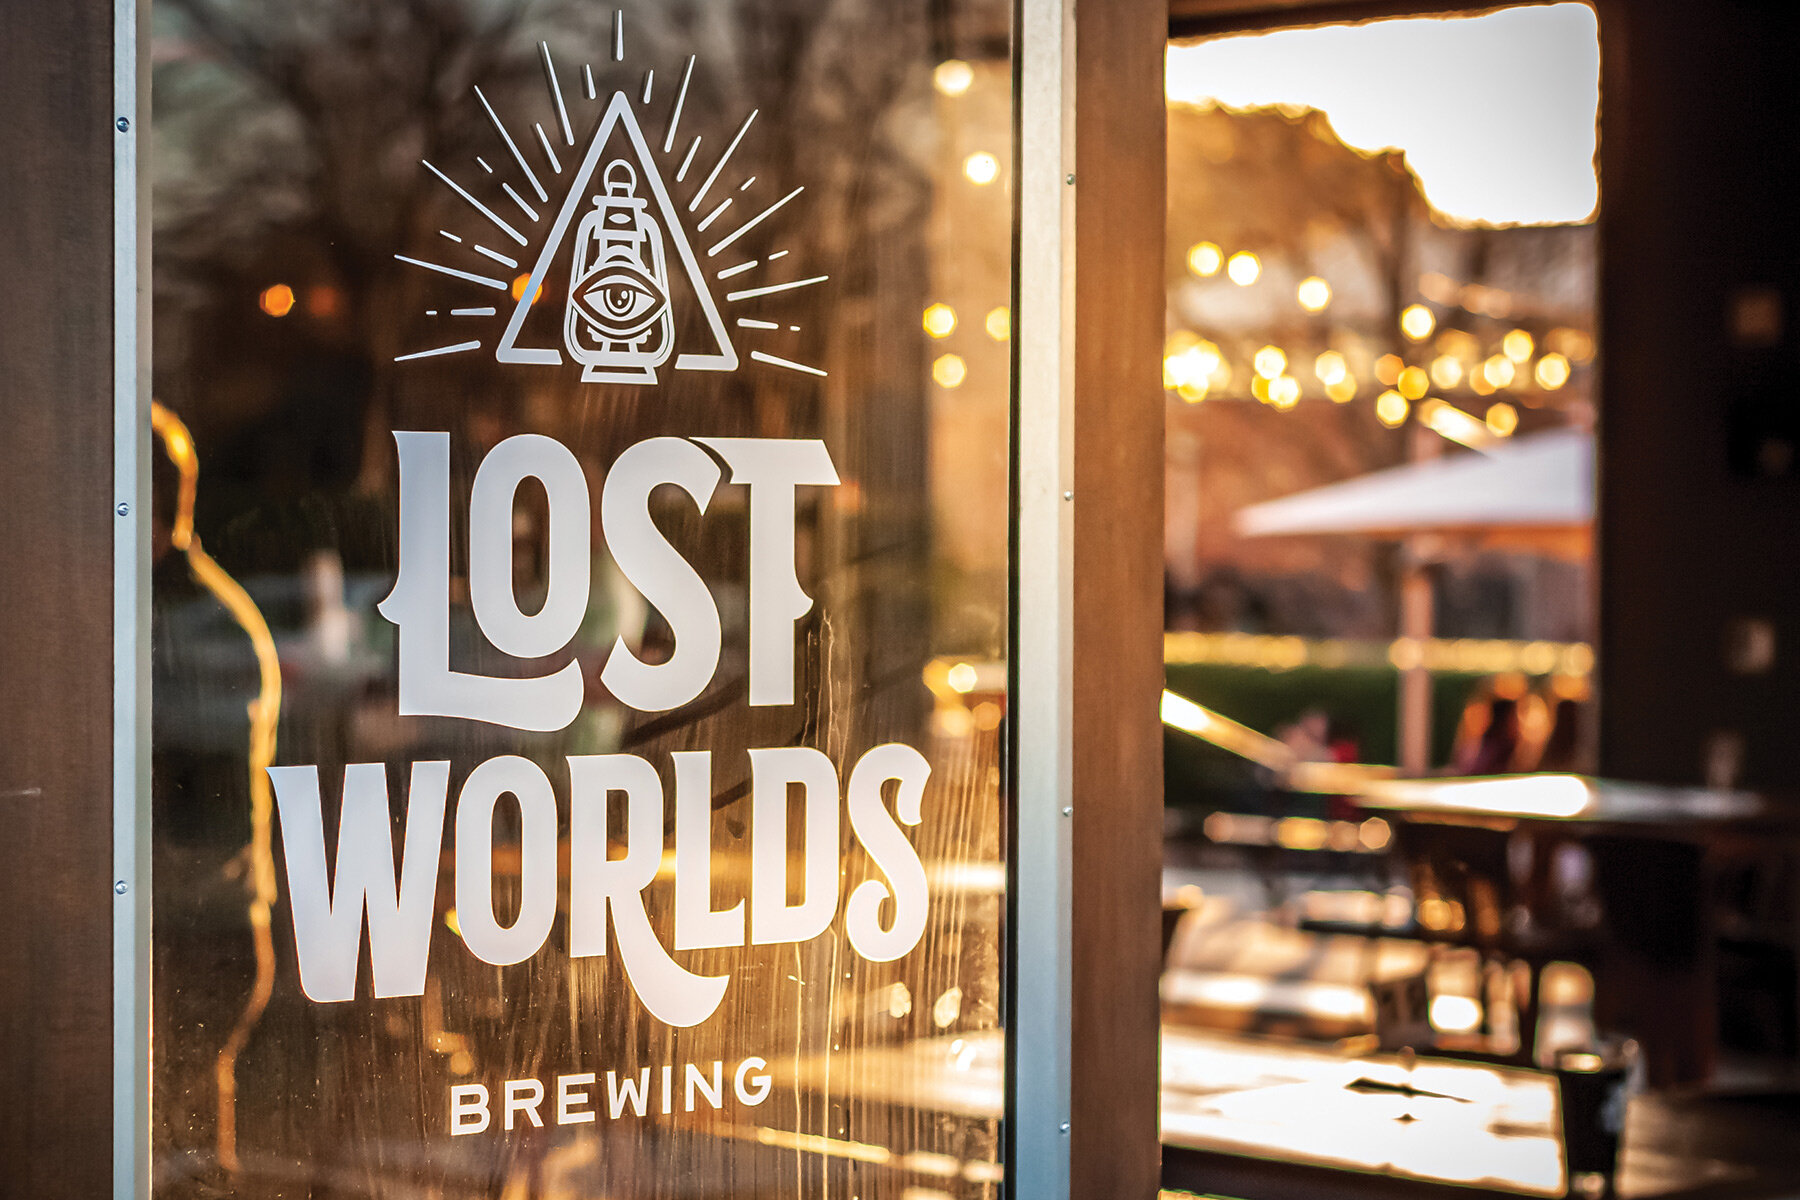 Image Courtesy: Lost Worlds Brewing